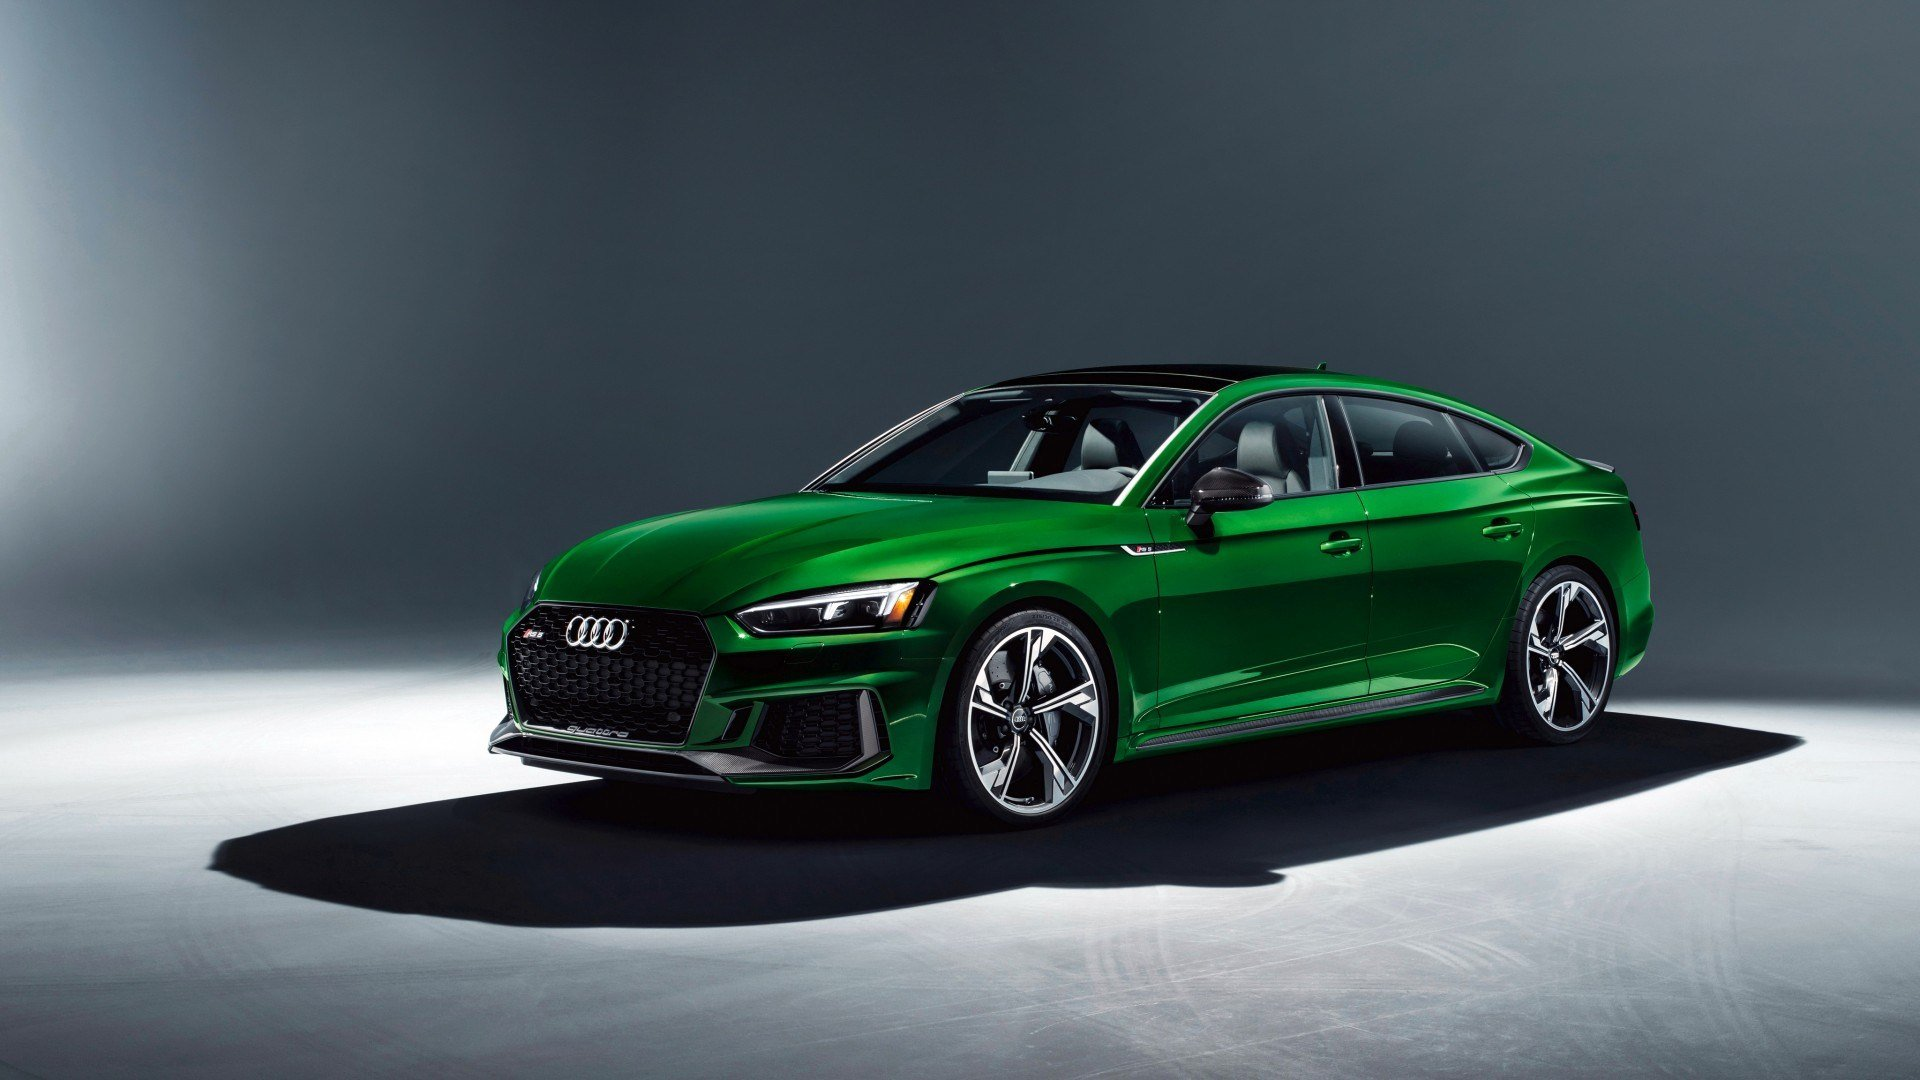 New 2019 Audi Rs 5 Sportback 4K Wallpaper Hd Car Wallpapers On This Month